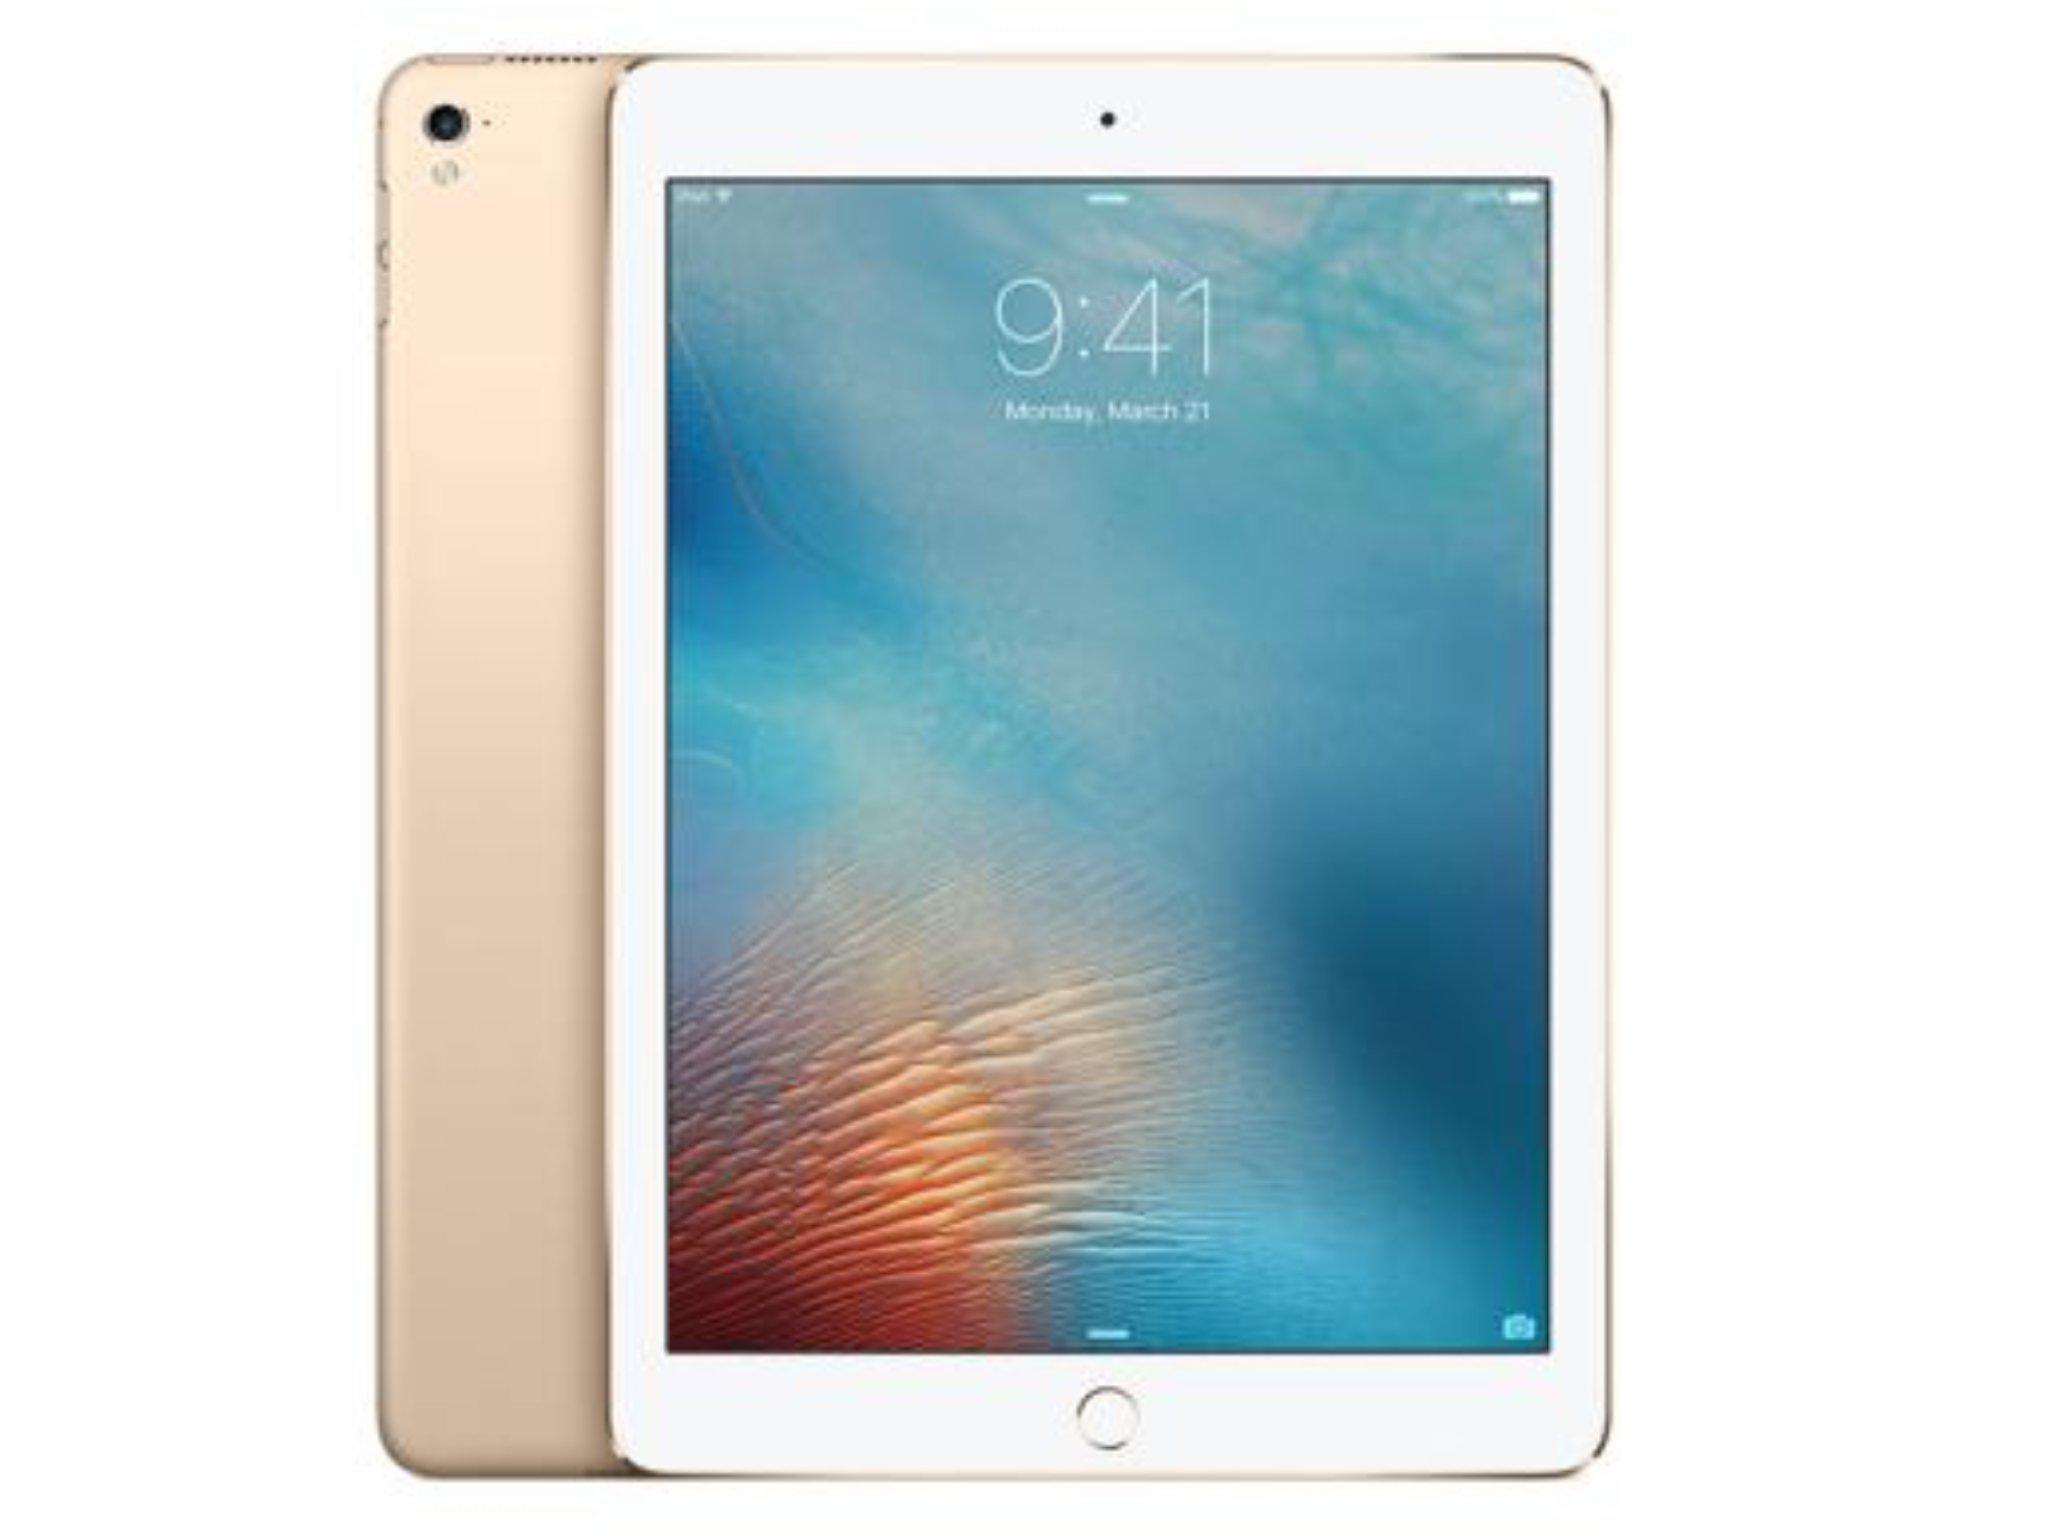 Apple iPad 5th Gen 2017 9.7'' 32GB Gold (Unlocked) (Certified Refurbished) by Apple